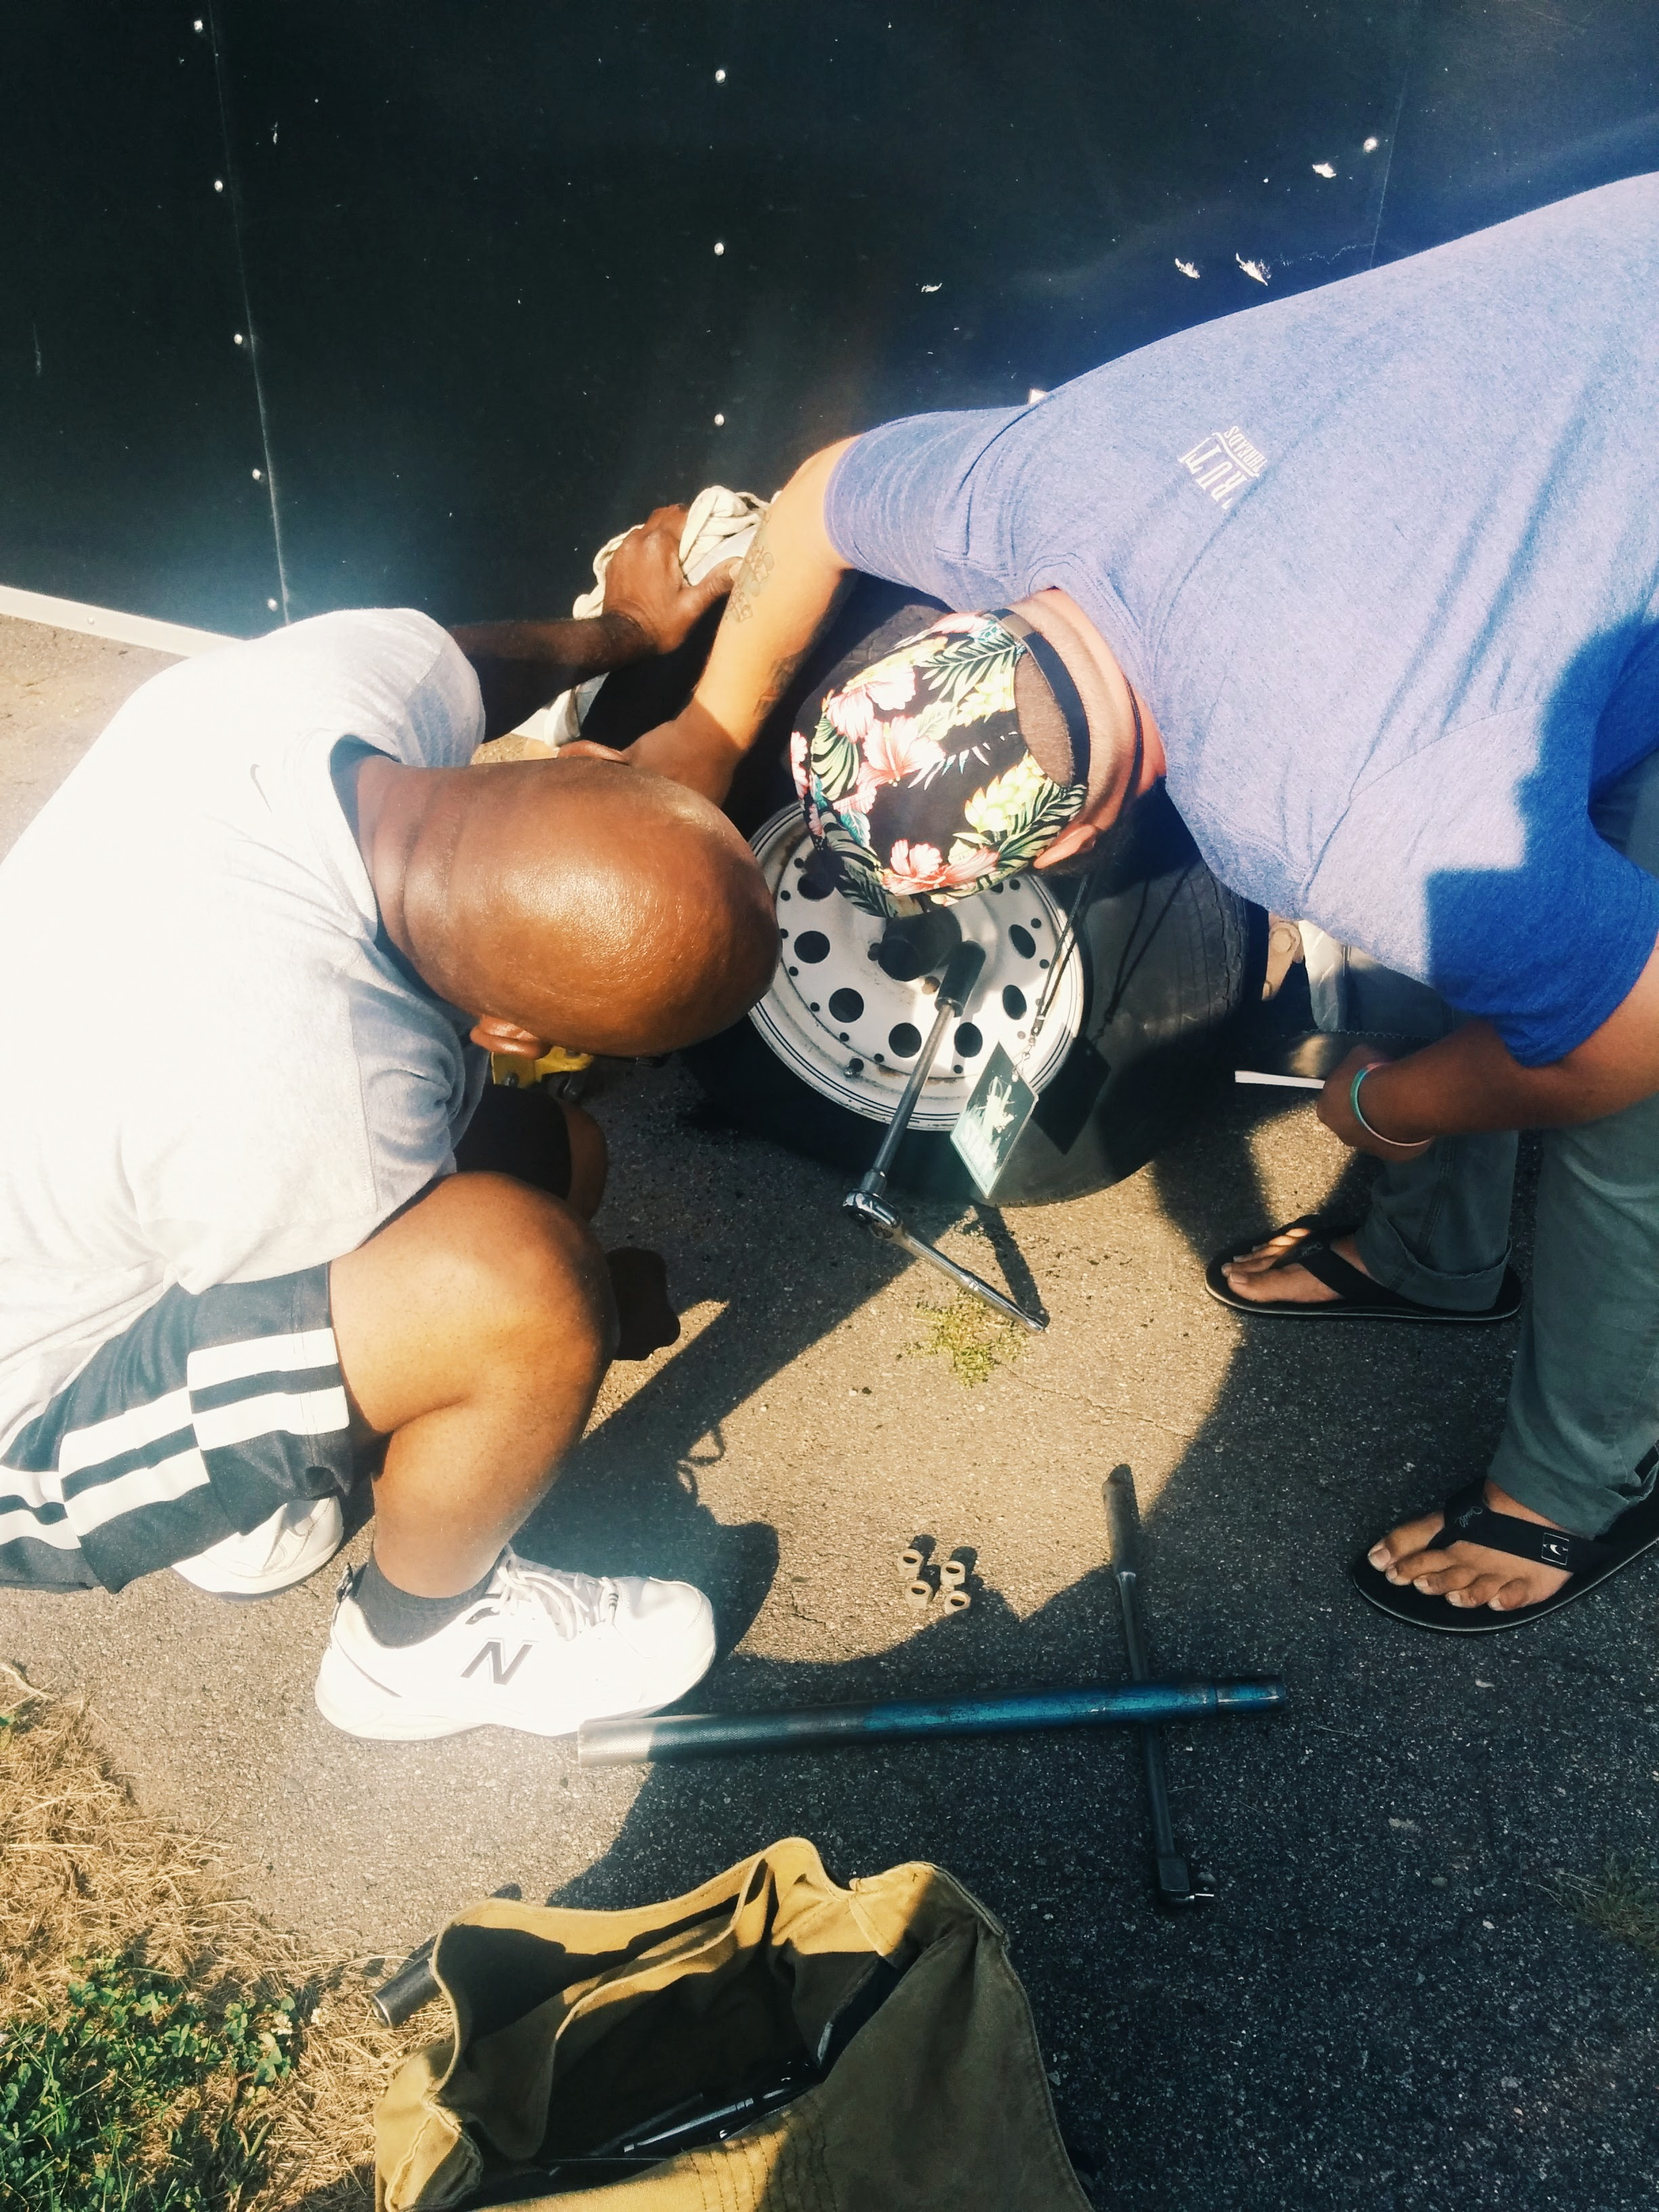 Sergio and Sam working on replacing a tire.